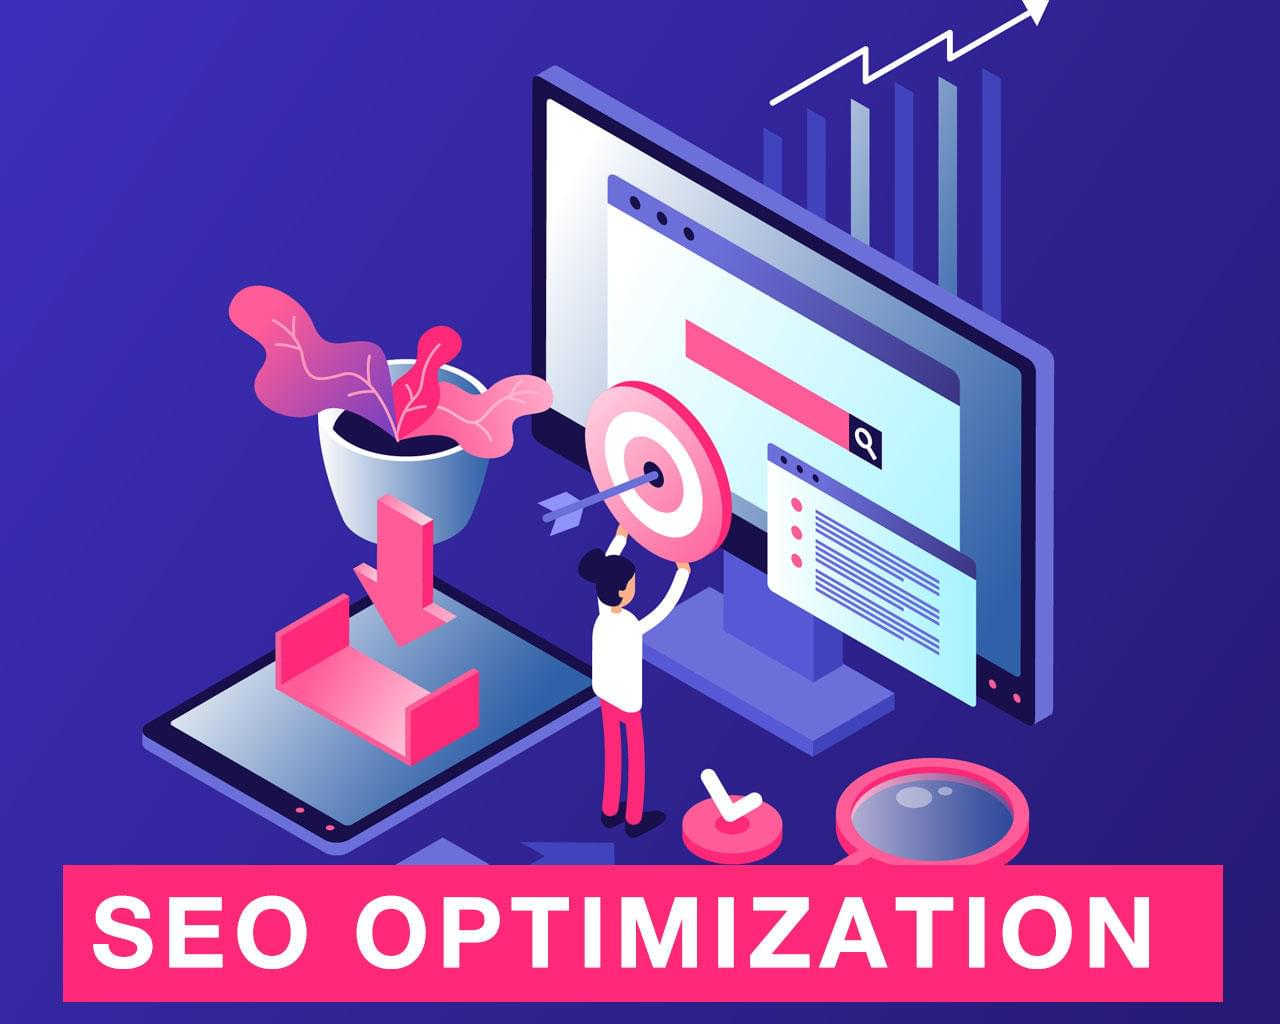 SEO Optimization by RoyalArts - 117511